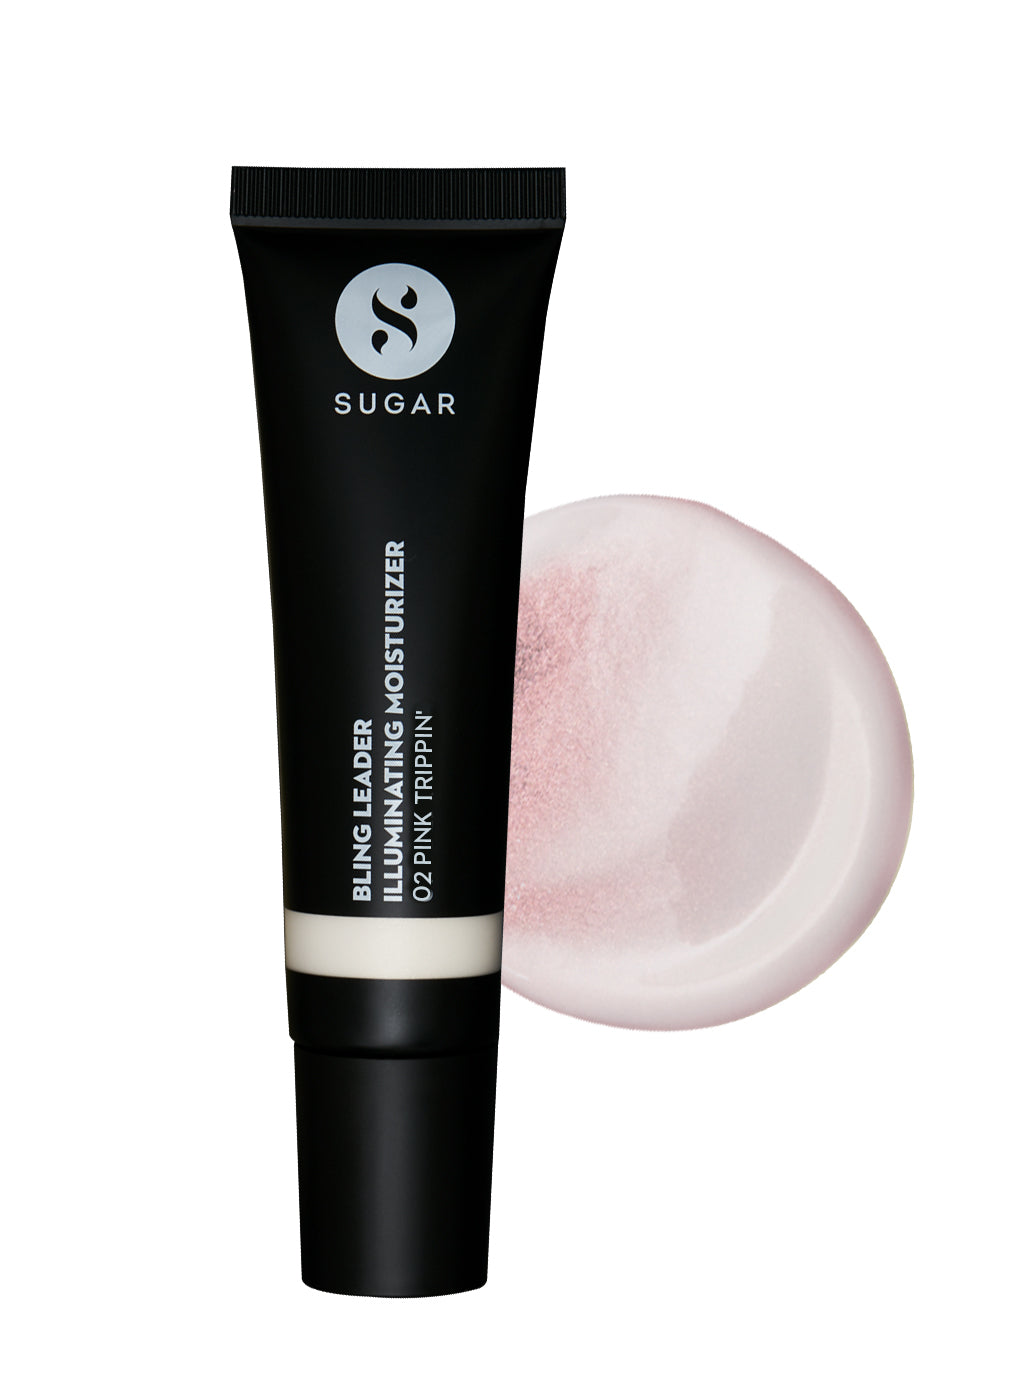 SUGAR Bling Leader Illuminating Moisturizer